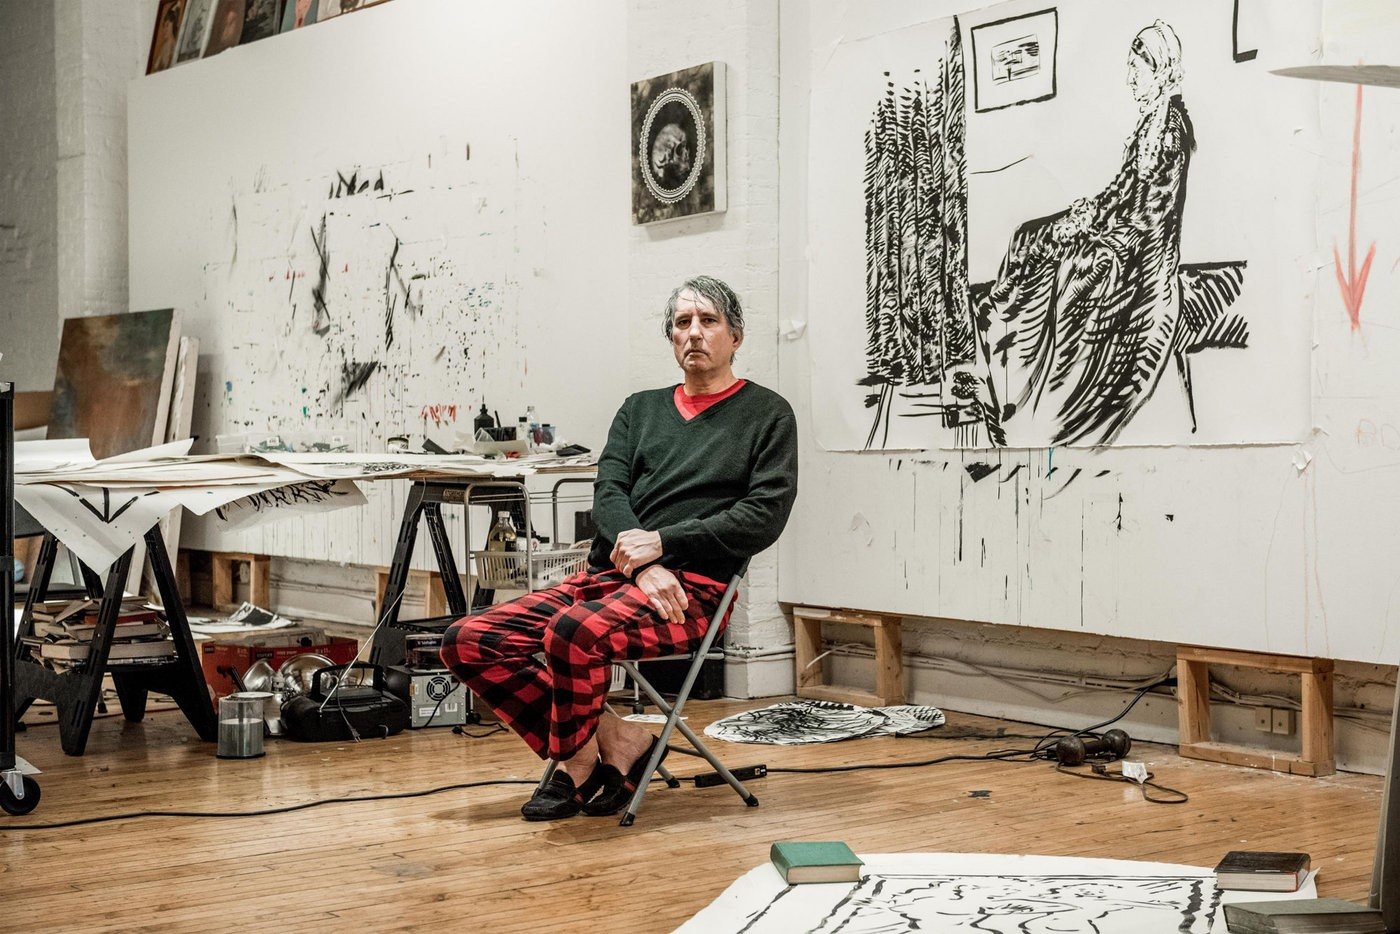 Medium raymond pettibon in his studio 2017 photo george etheredge